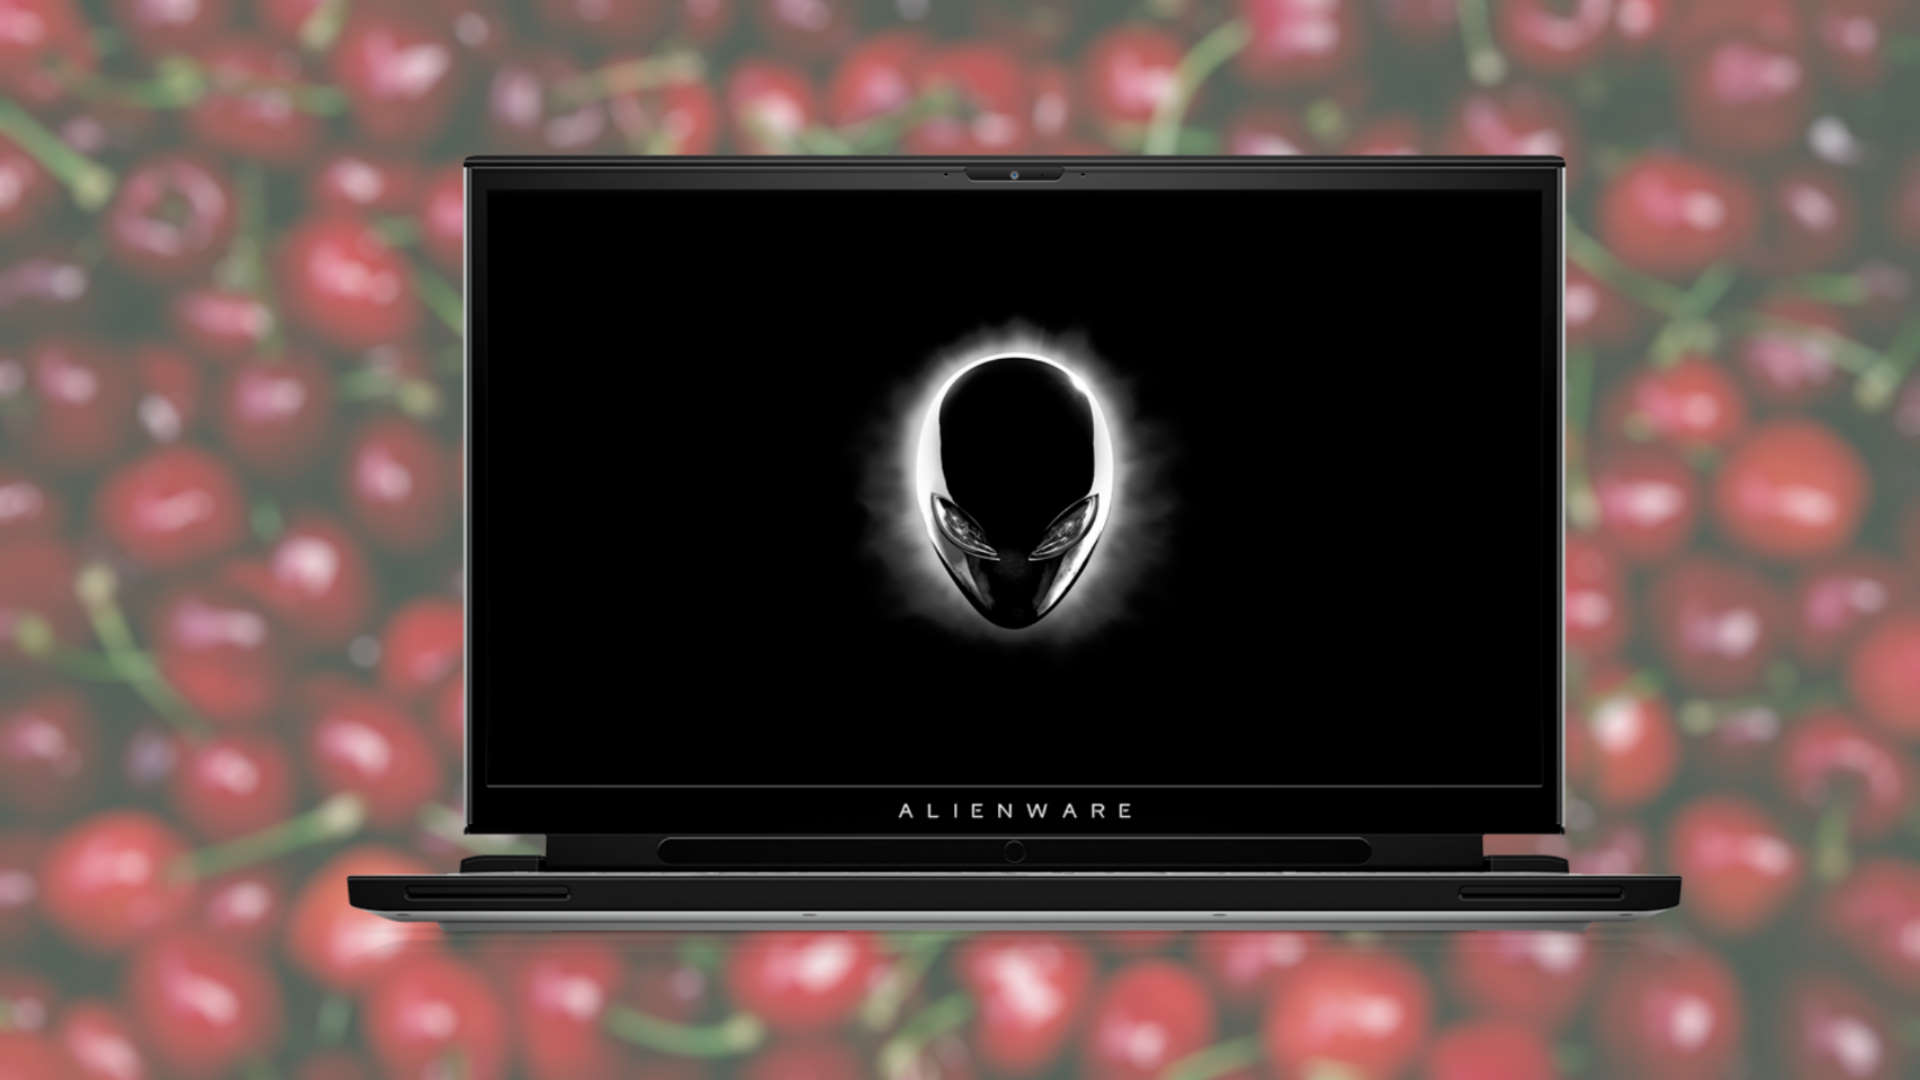 Alienware x Cherry gaming laptop delivers DeLorean-inspired 'true mechanical key switches'